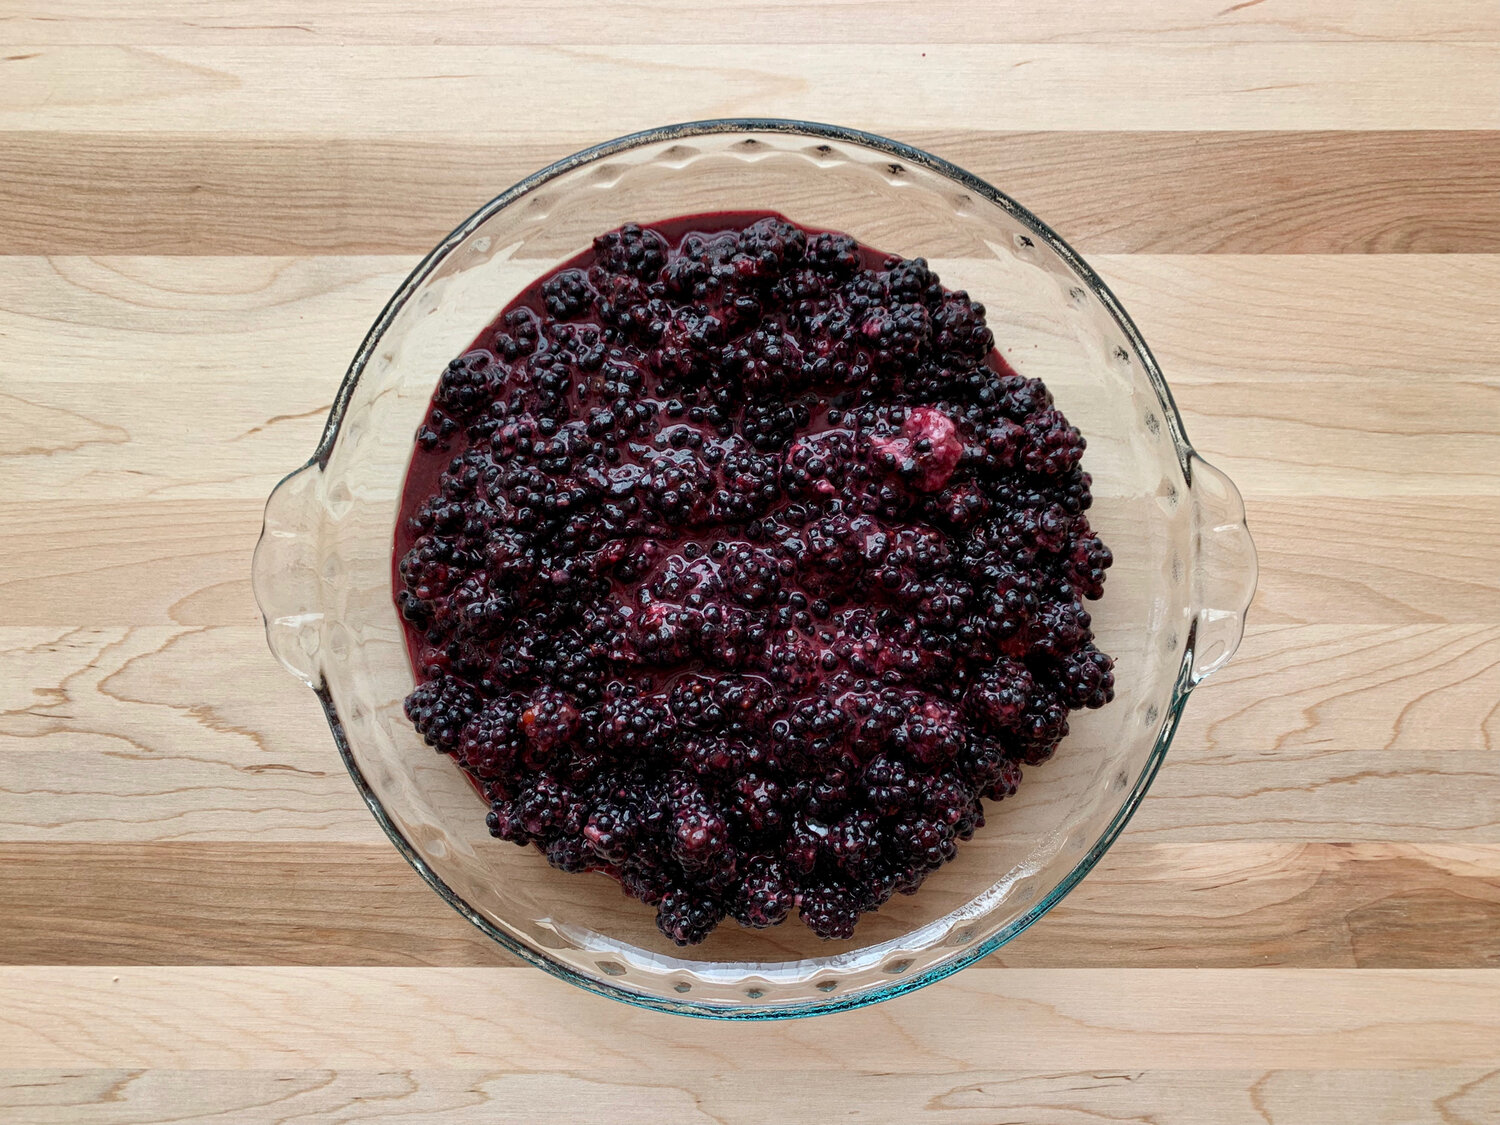 5. Pour blackberry mixture into greased pie pan and spread berries evenly. -